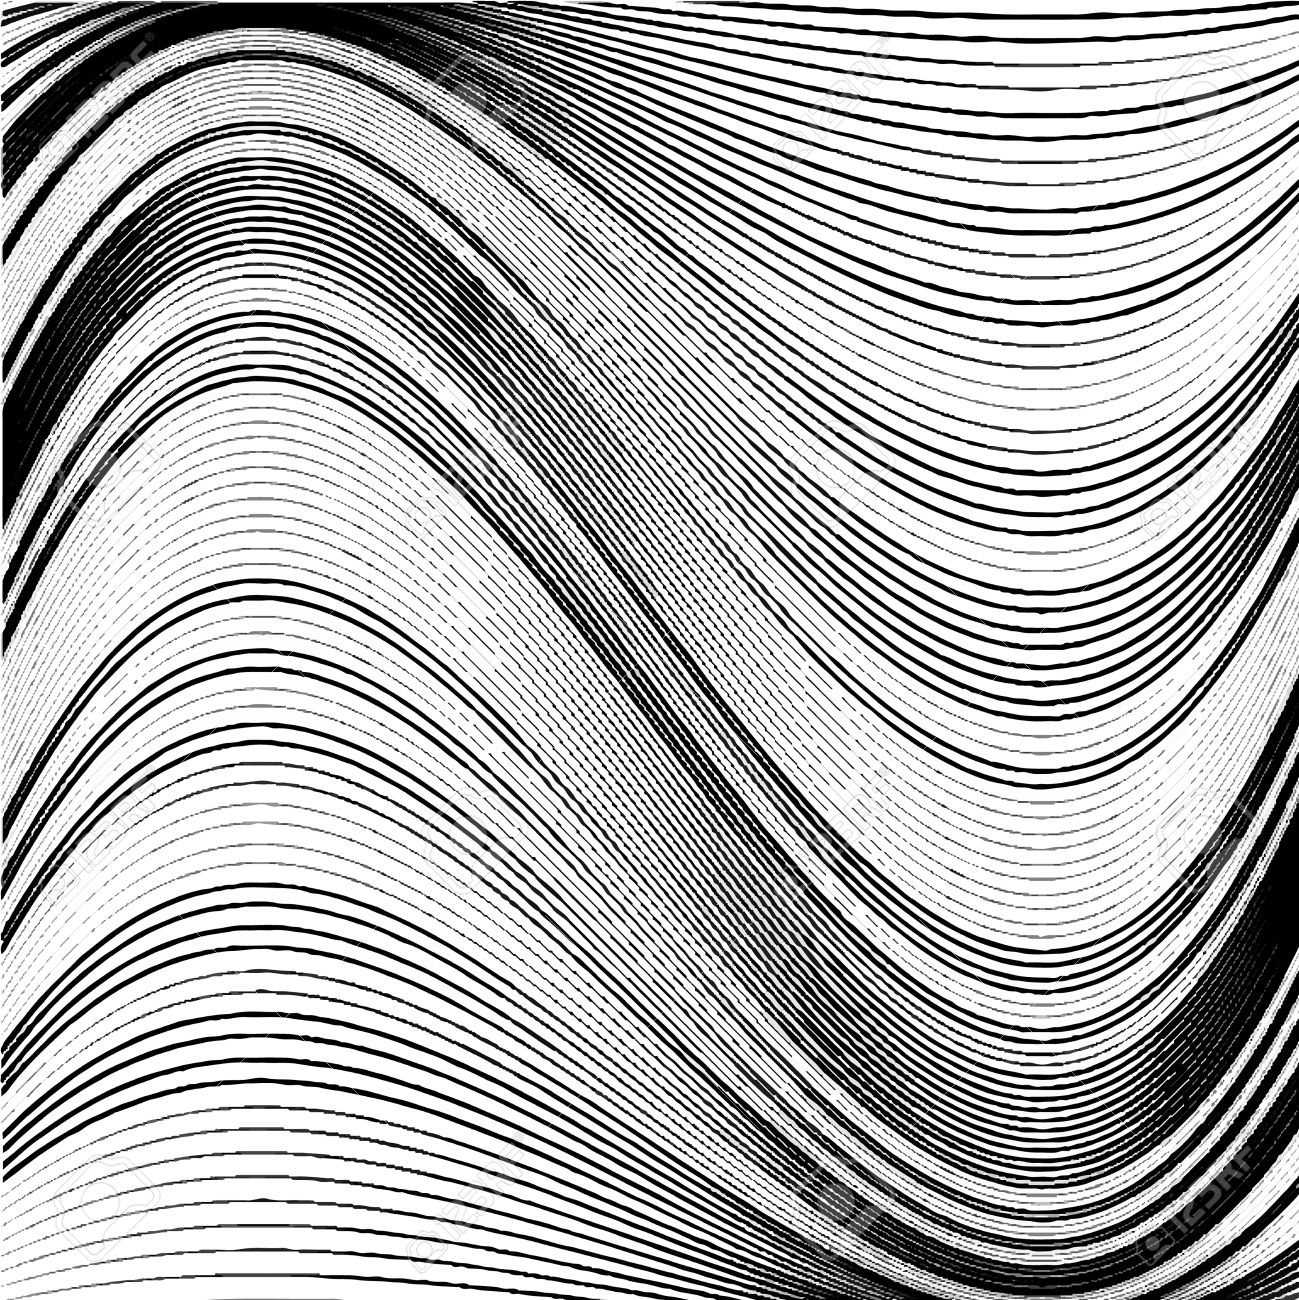 1299x1300 Abstract Background Of Wavy Lines. Black And White Vector